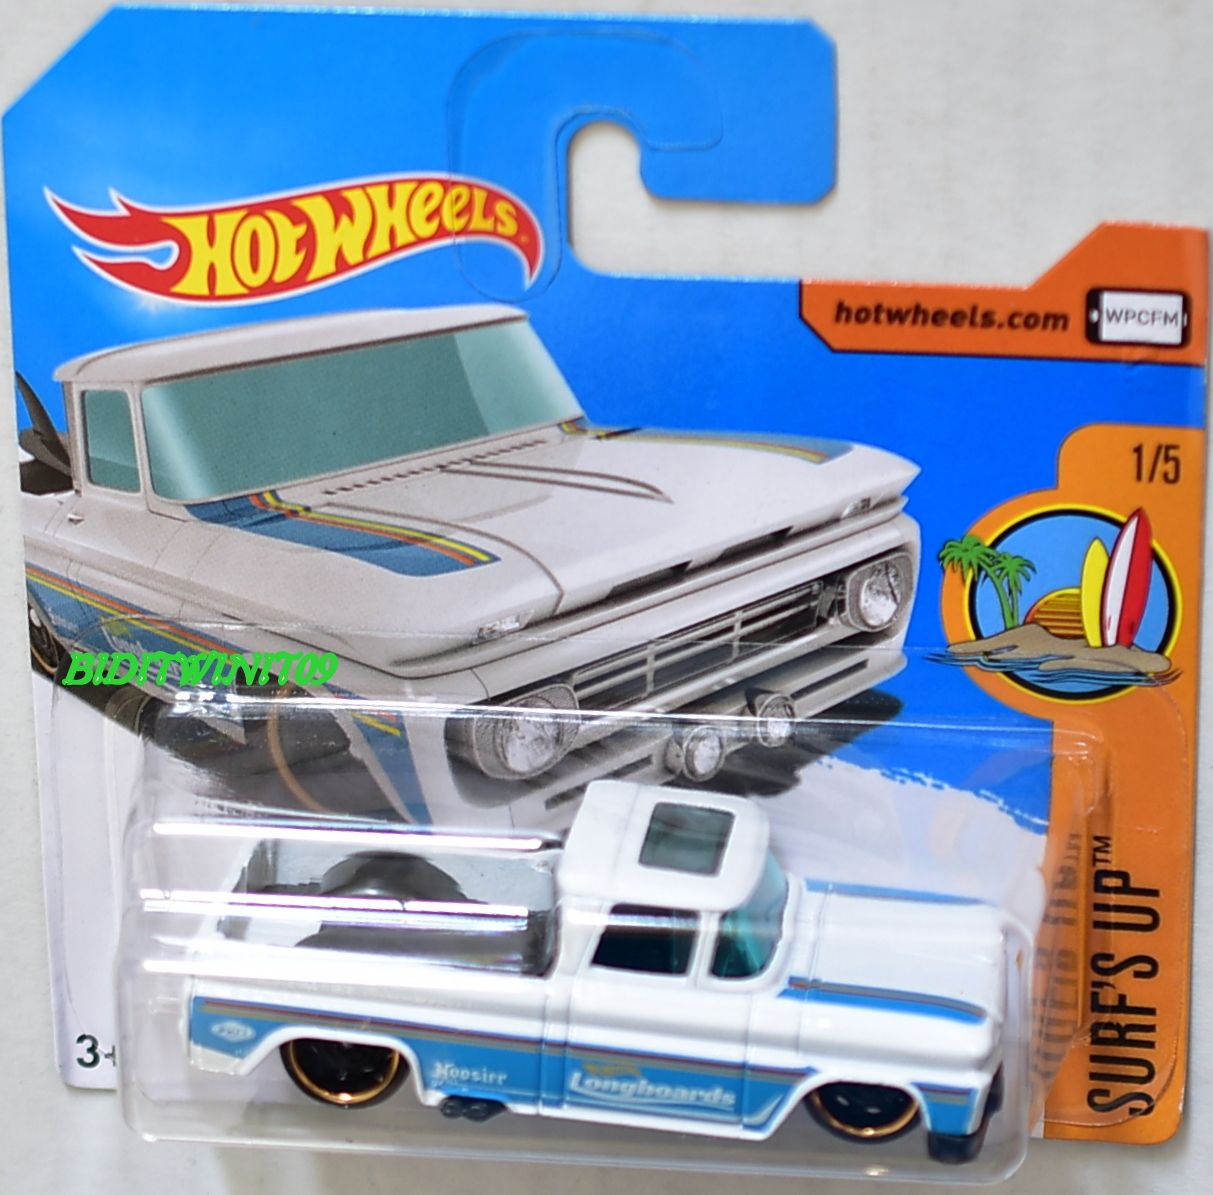 HOT WHEELS 2017 SURF'S UP CUSTOM '62 CHEVY PICKUP #1/5 WHITE SHORT CARD